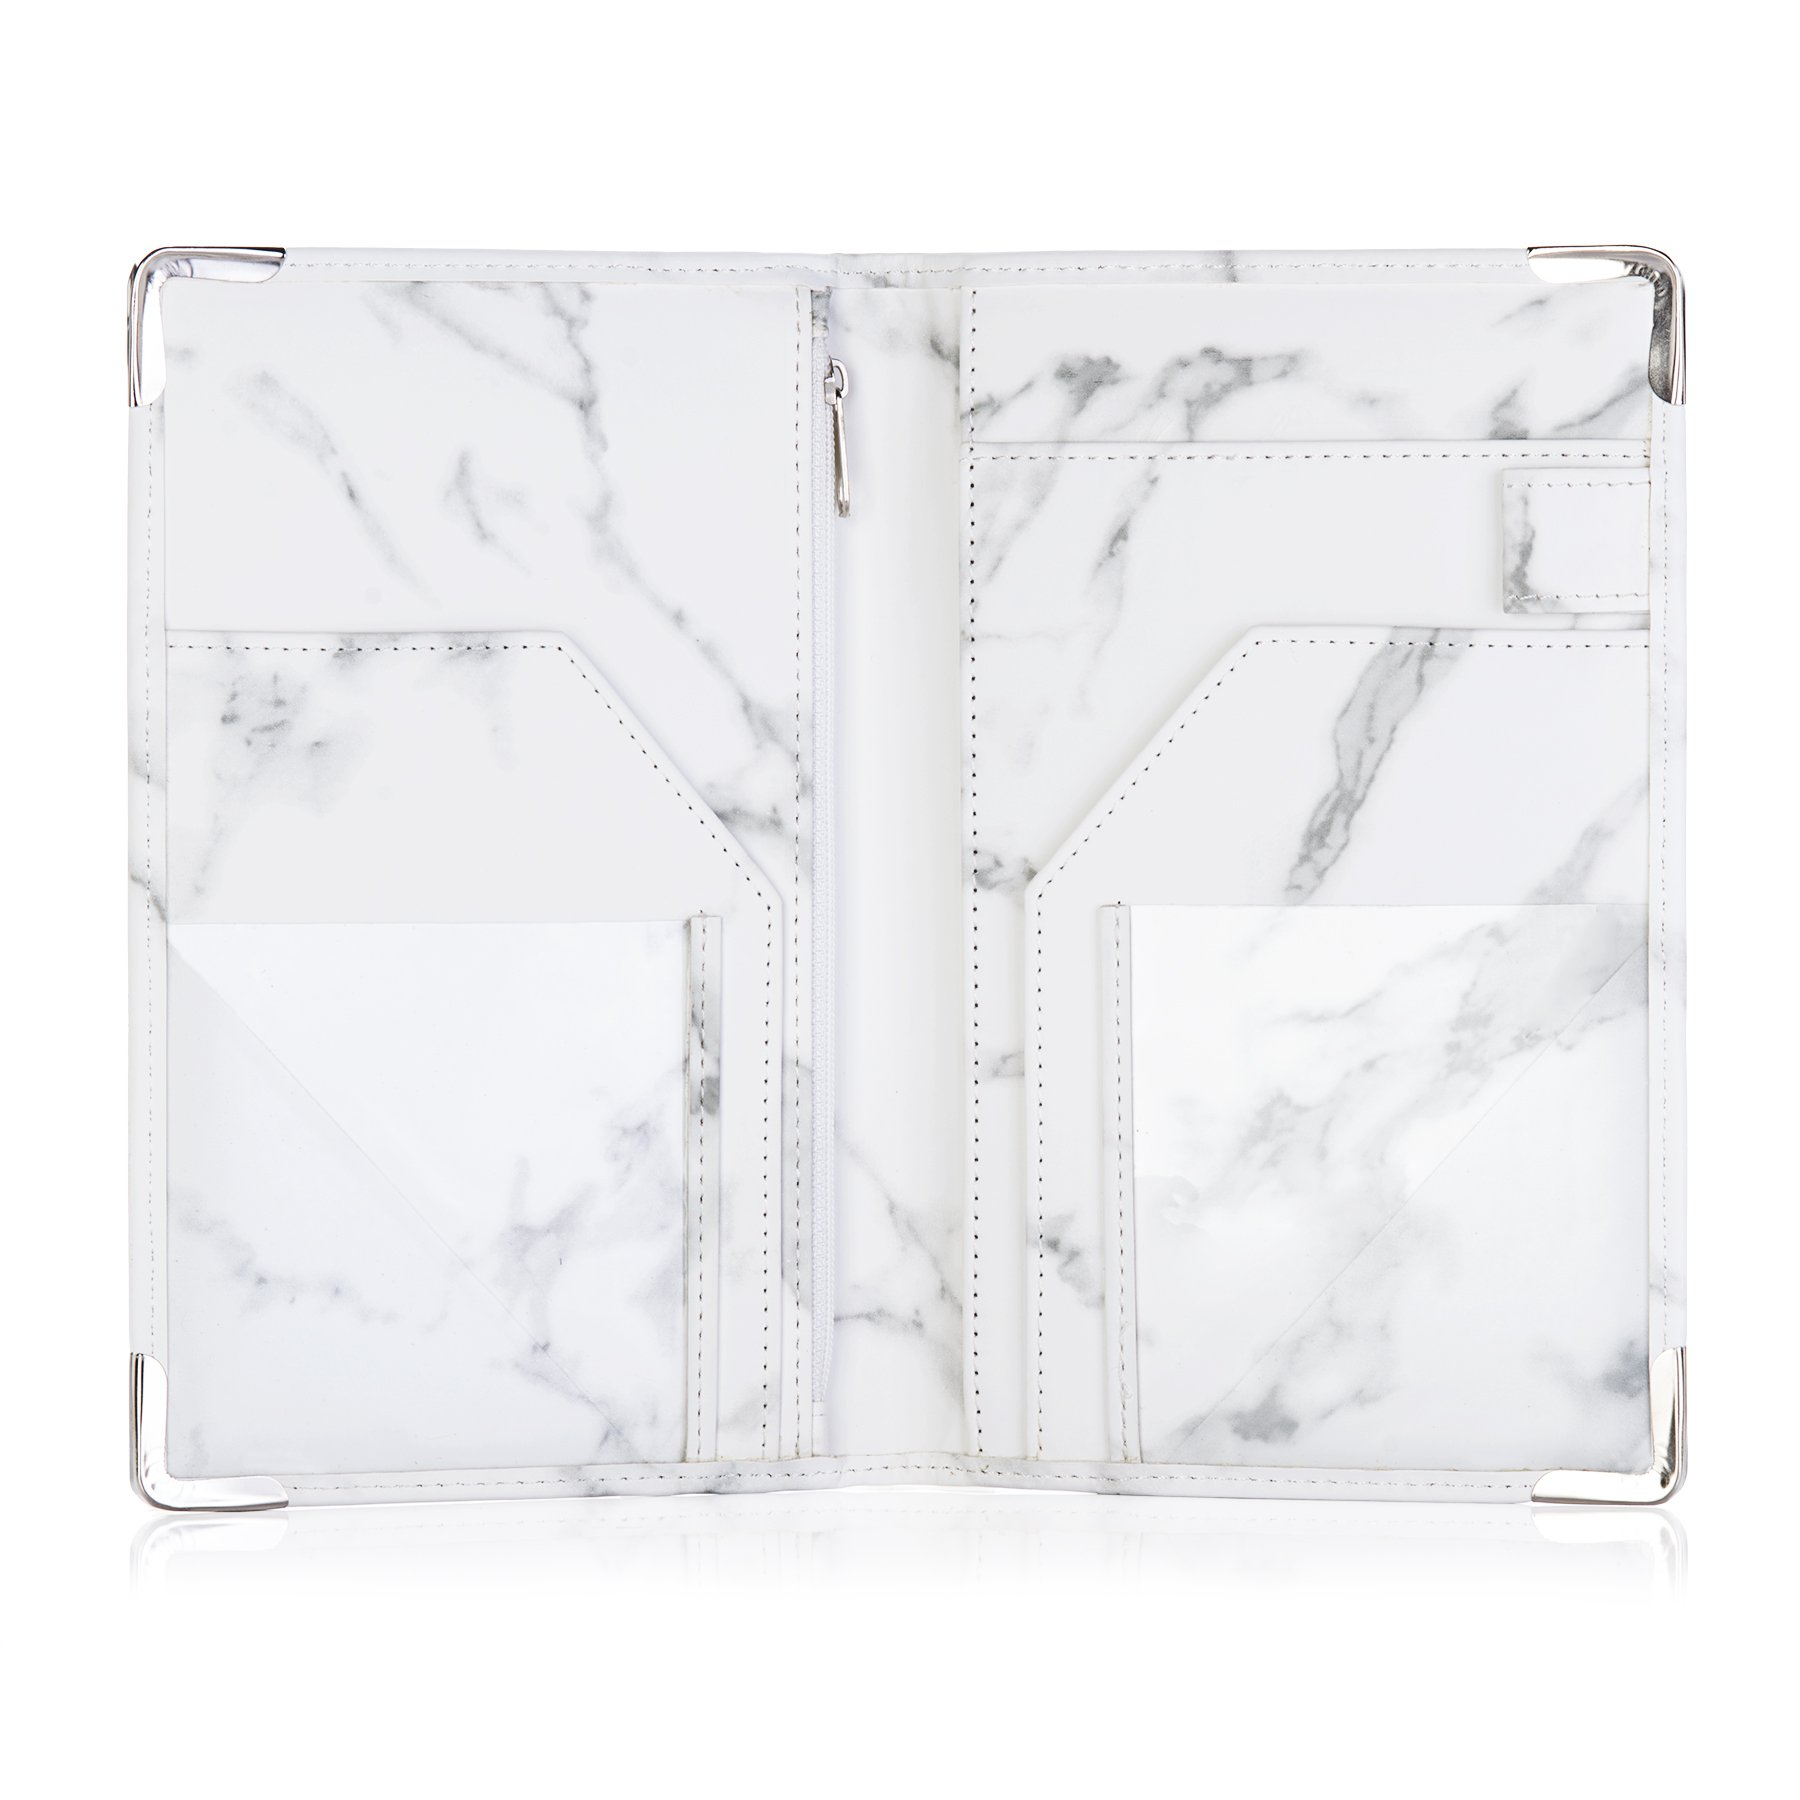 Sonic Server Marble Style Deluxe Server Book for Restaurant Waiter Waitress Waitstaff   Classy White Marble   9 Pockets includes Zipper Pouch with Pen Holder   Holds Guest Checks, Money, Order Pad by Sonic Server (Image #3)